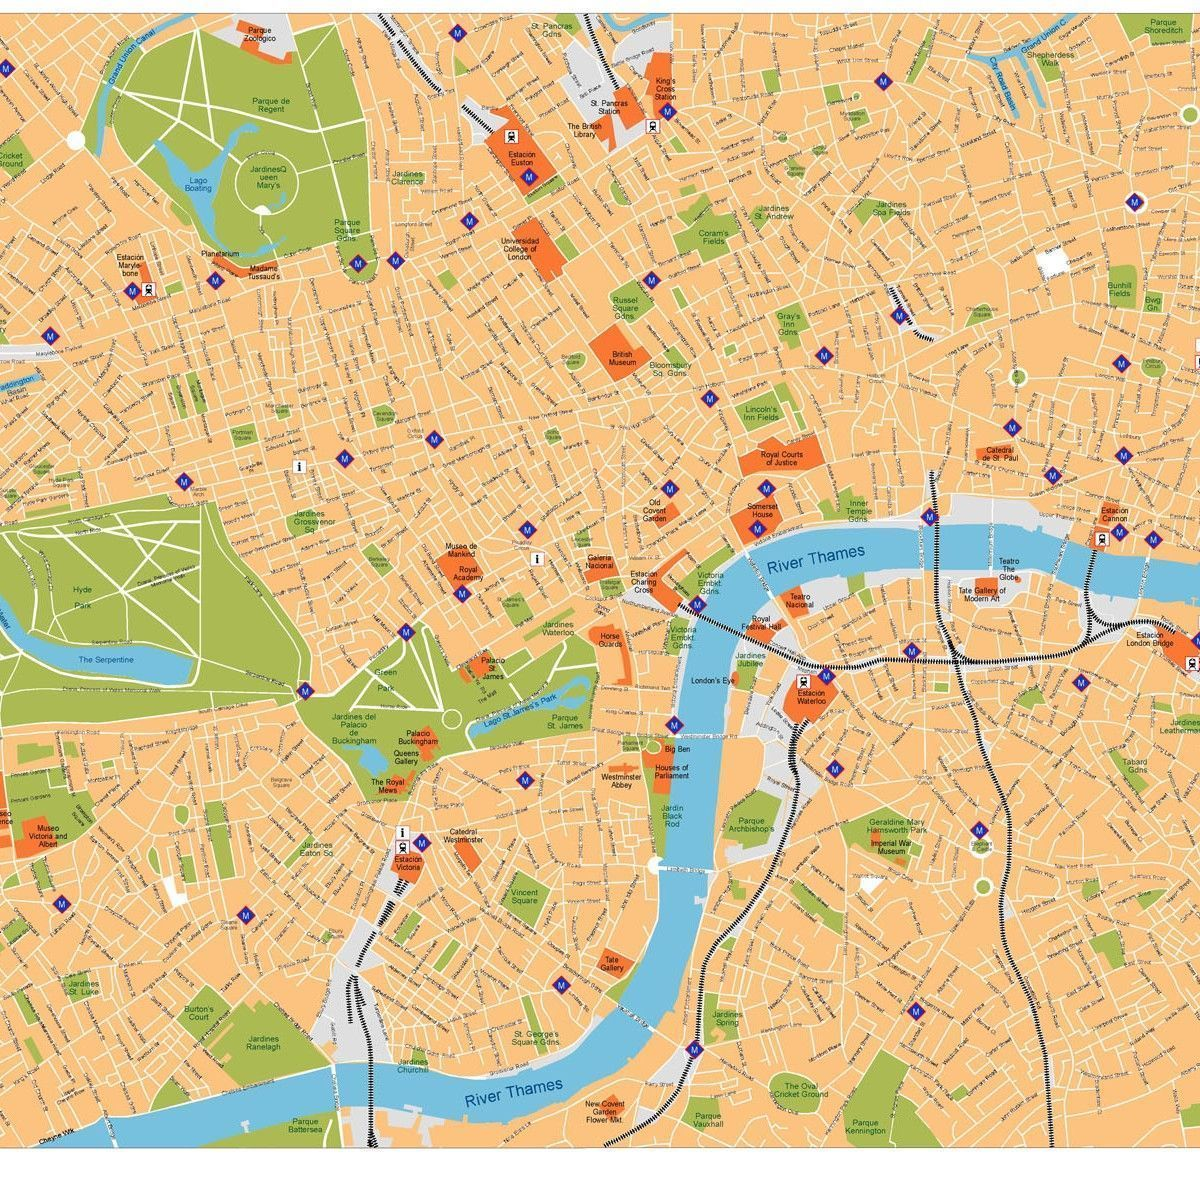 Easy London Map.London Vector Map Digital Maps Netmaps Uk Vector Eps Wall Maps